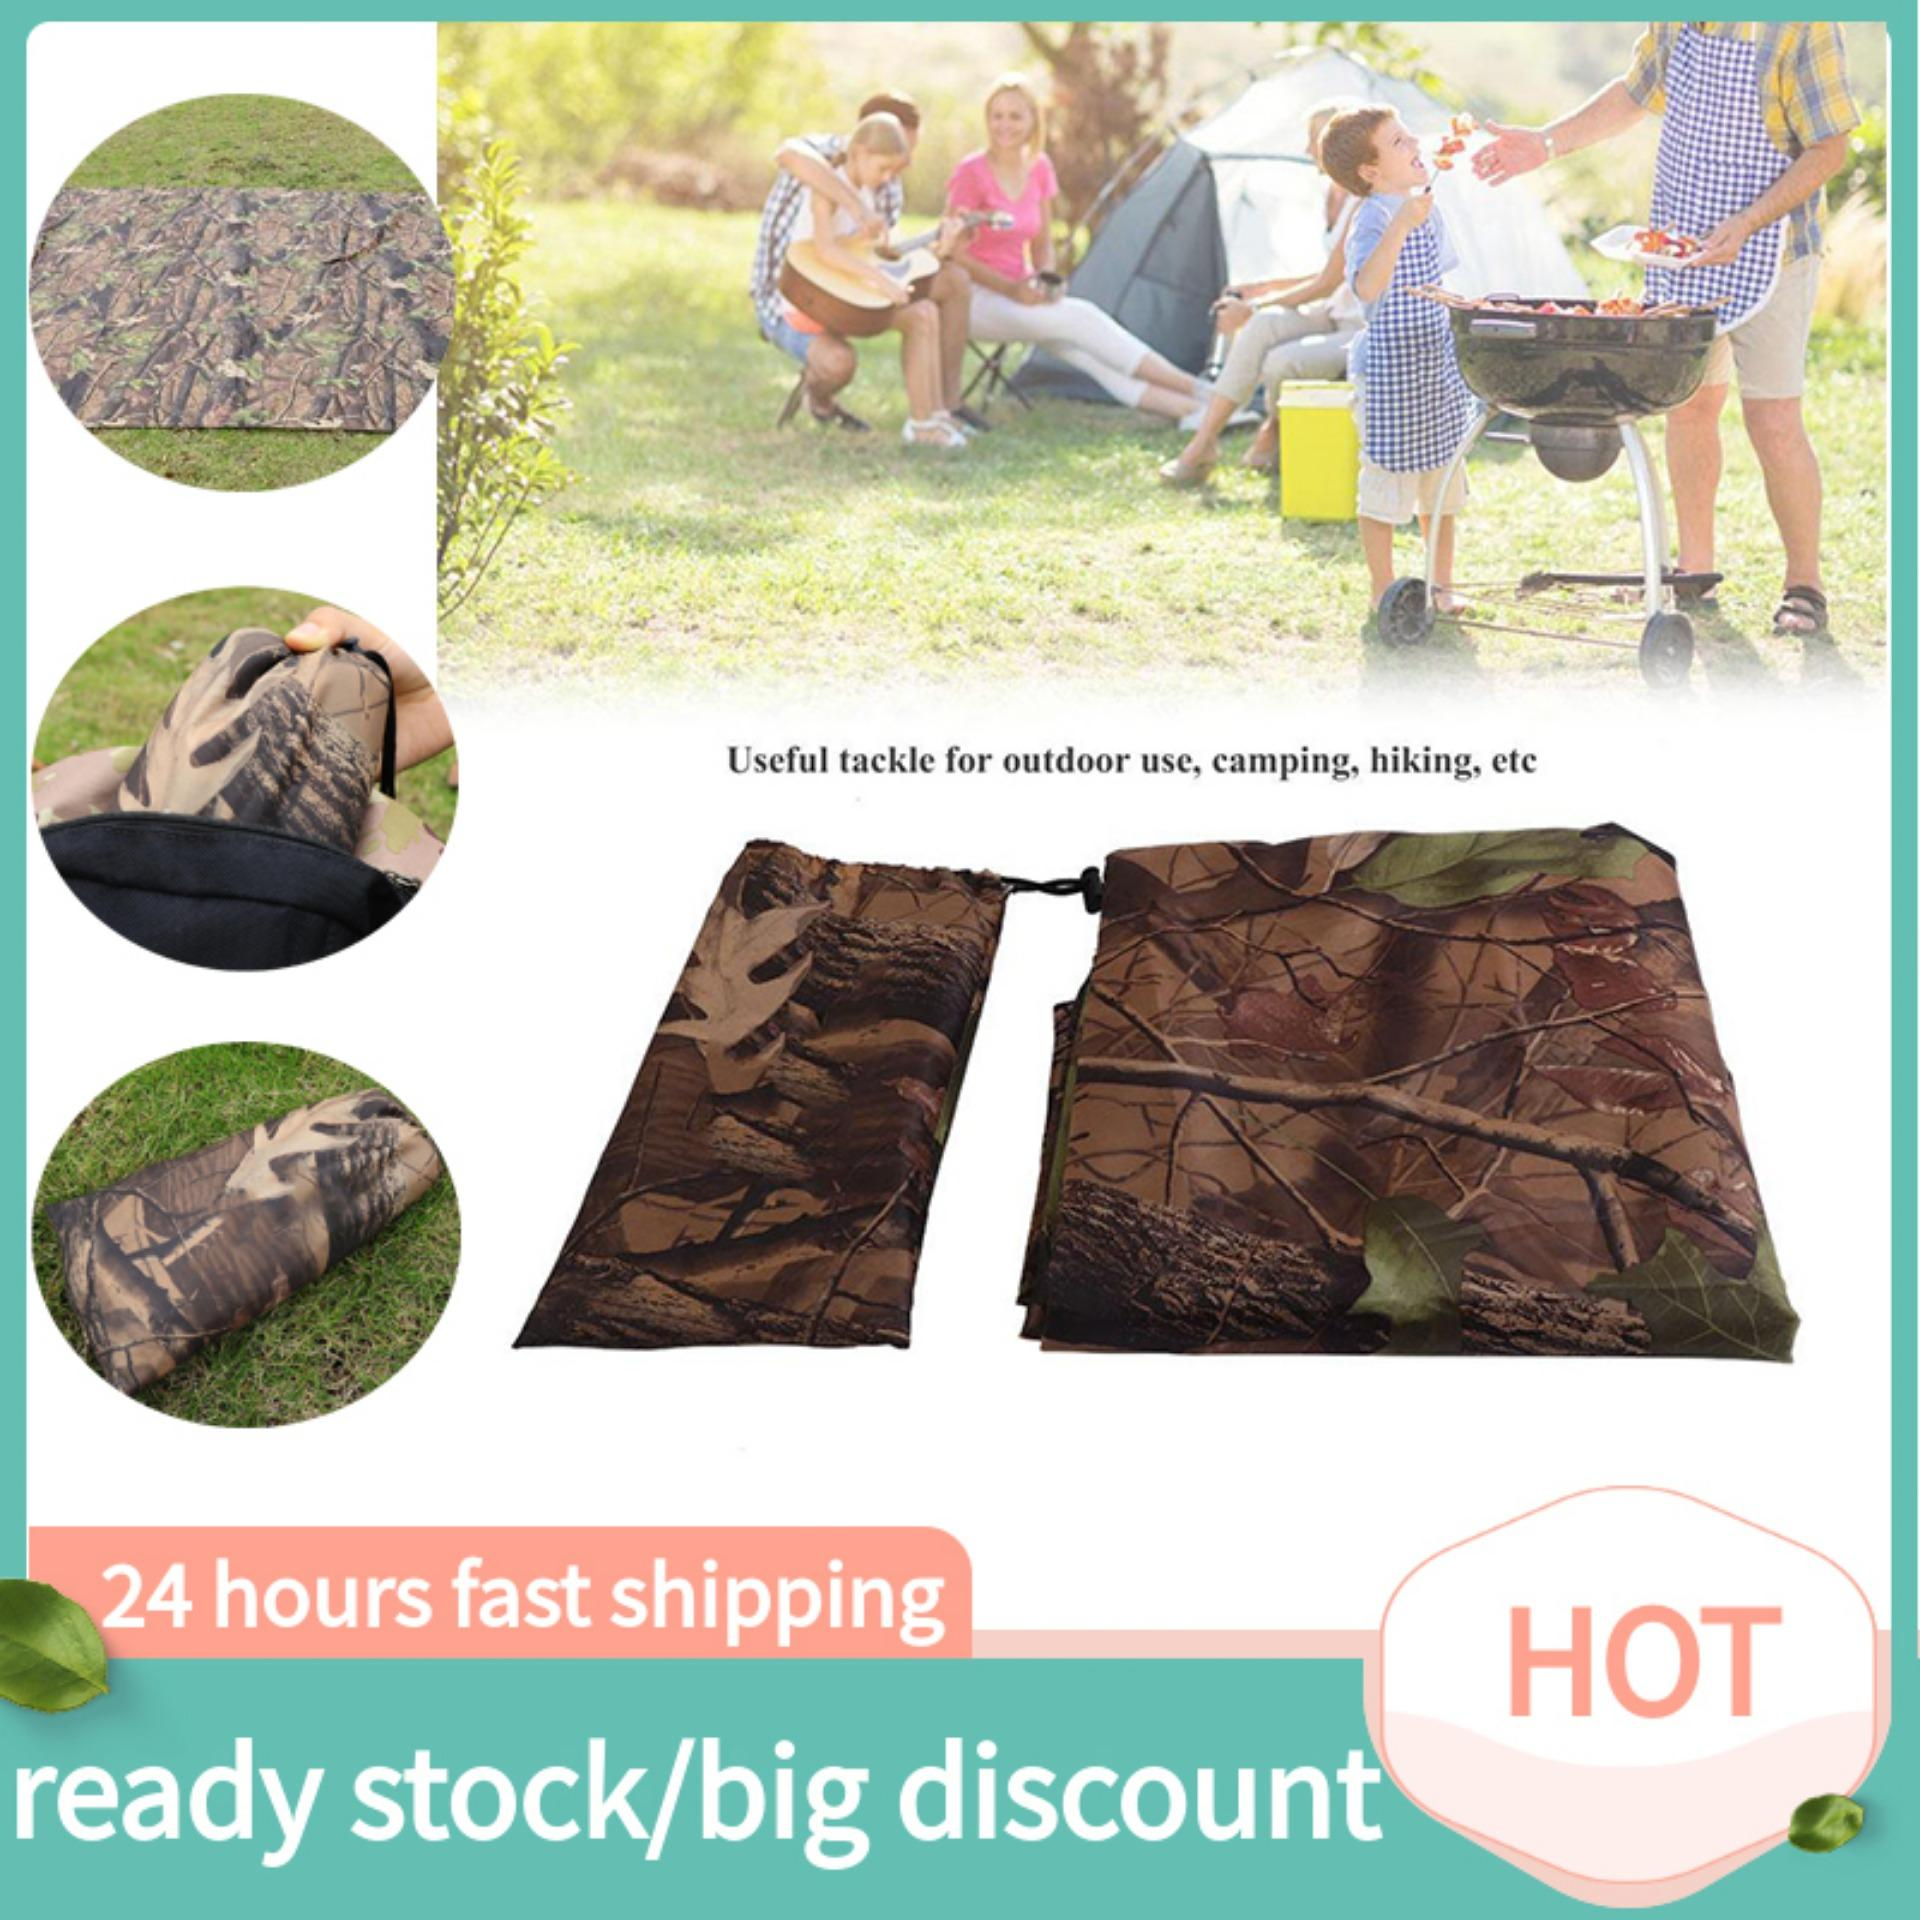 joliannh 【Phổ biến nhất + Top】 Waterproof Army Camo Tent Tarp Sheet Canopy Awning Rain Cover Camping Shelter Hiking